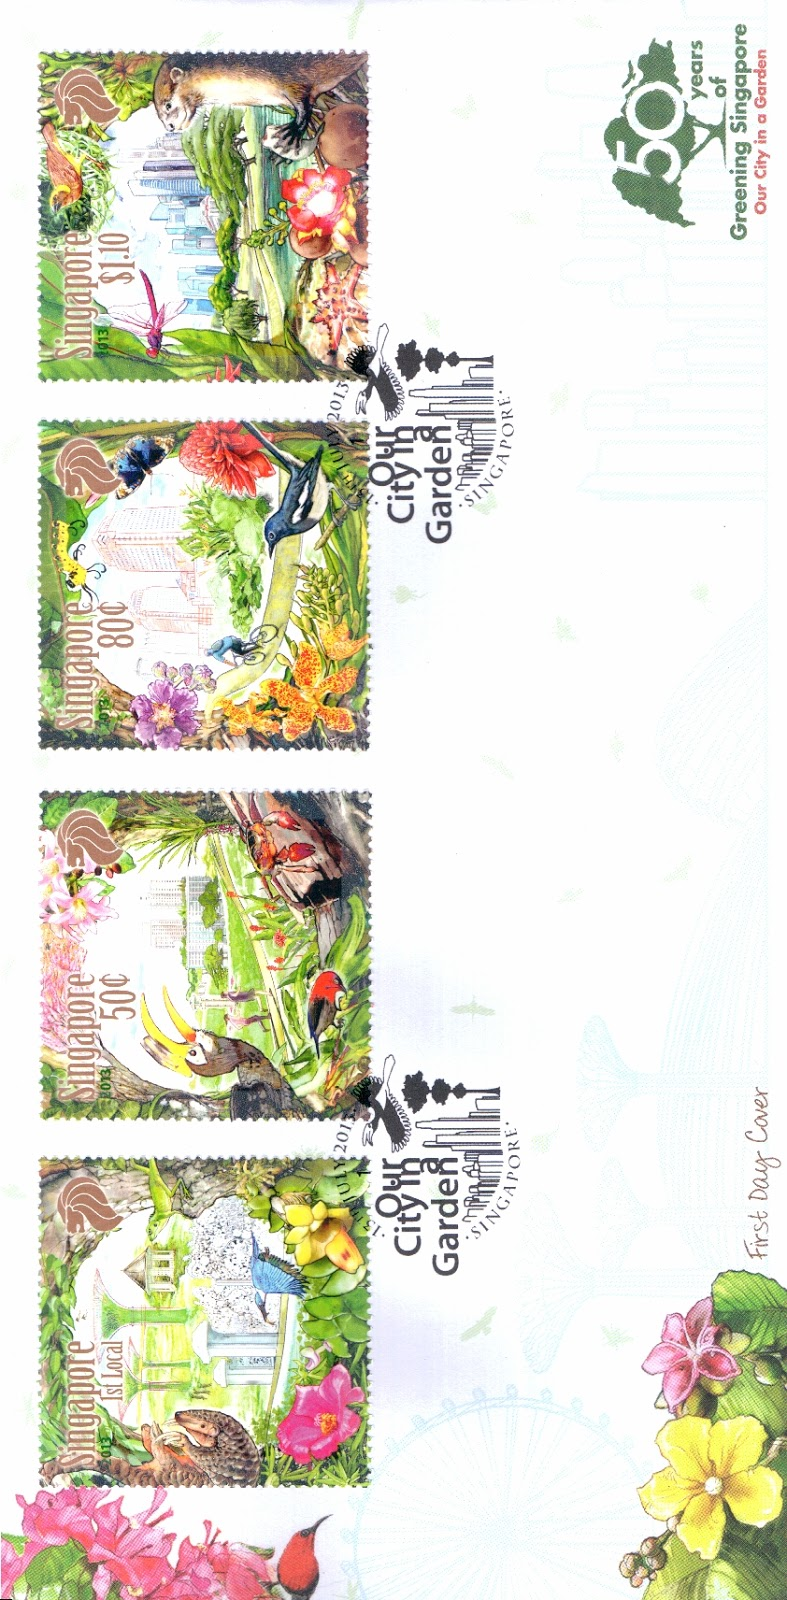 Pre-cancelled First-Day Cover affixed with stamps S$3.45*